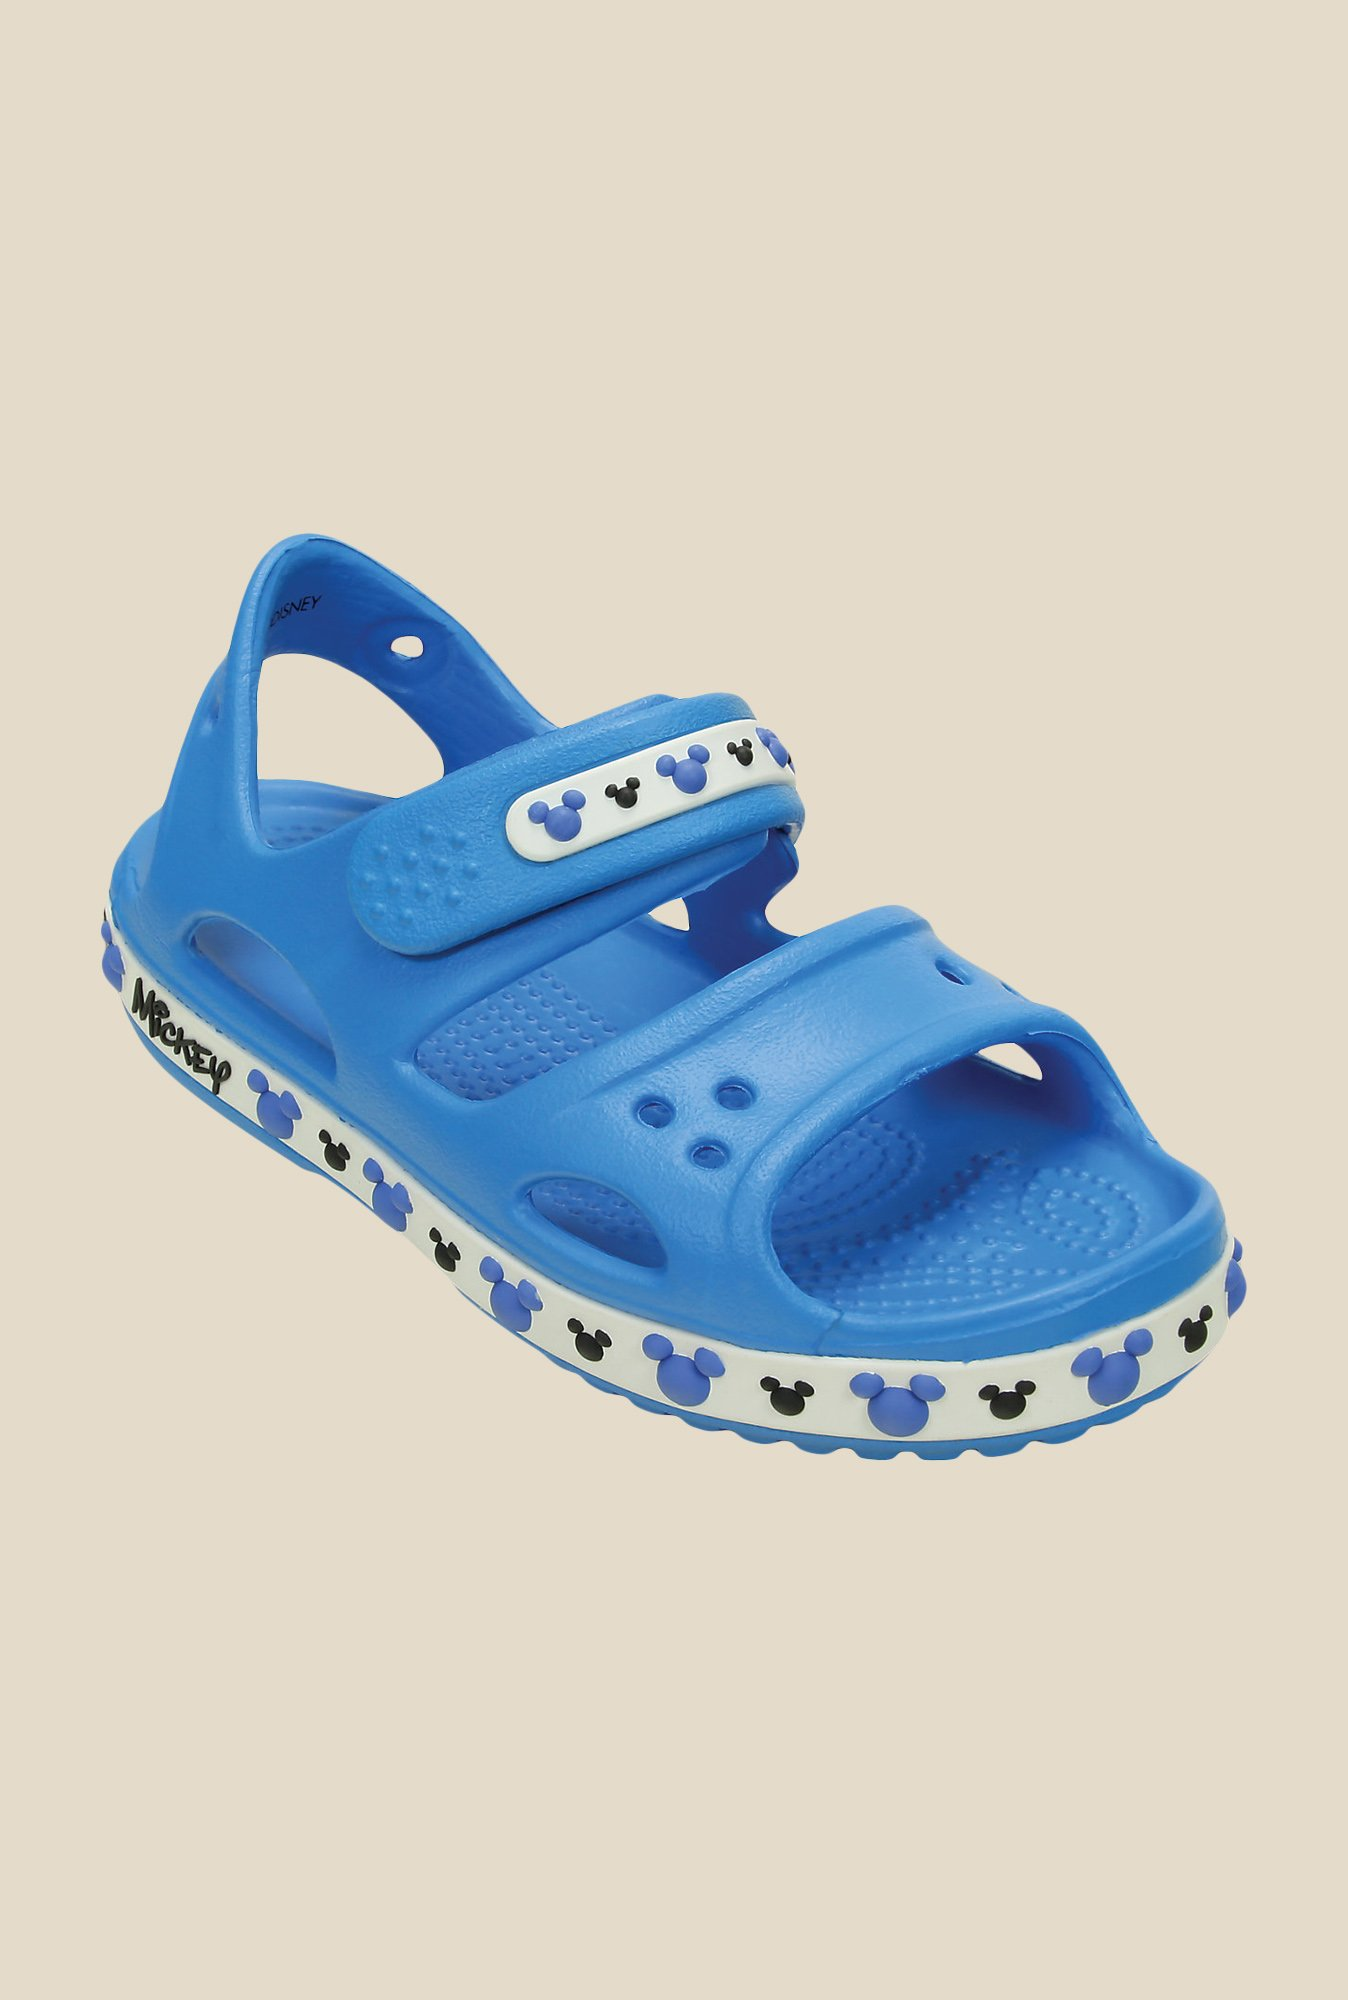 Crocs Crocband II Ocean Blue Floater Sandals